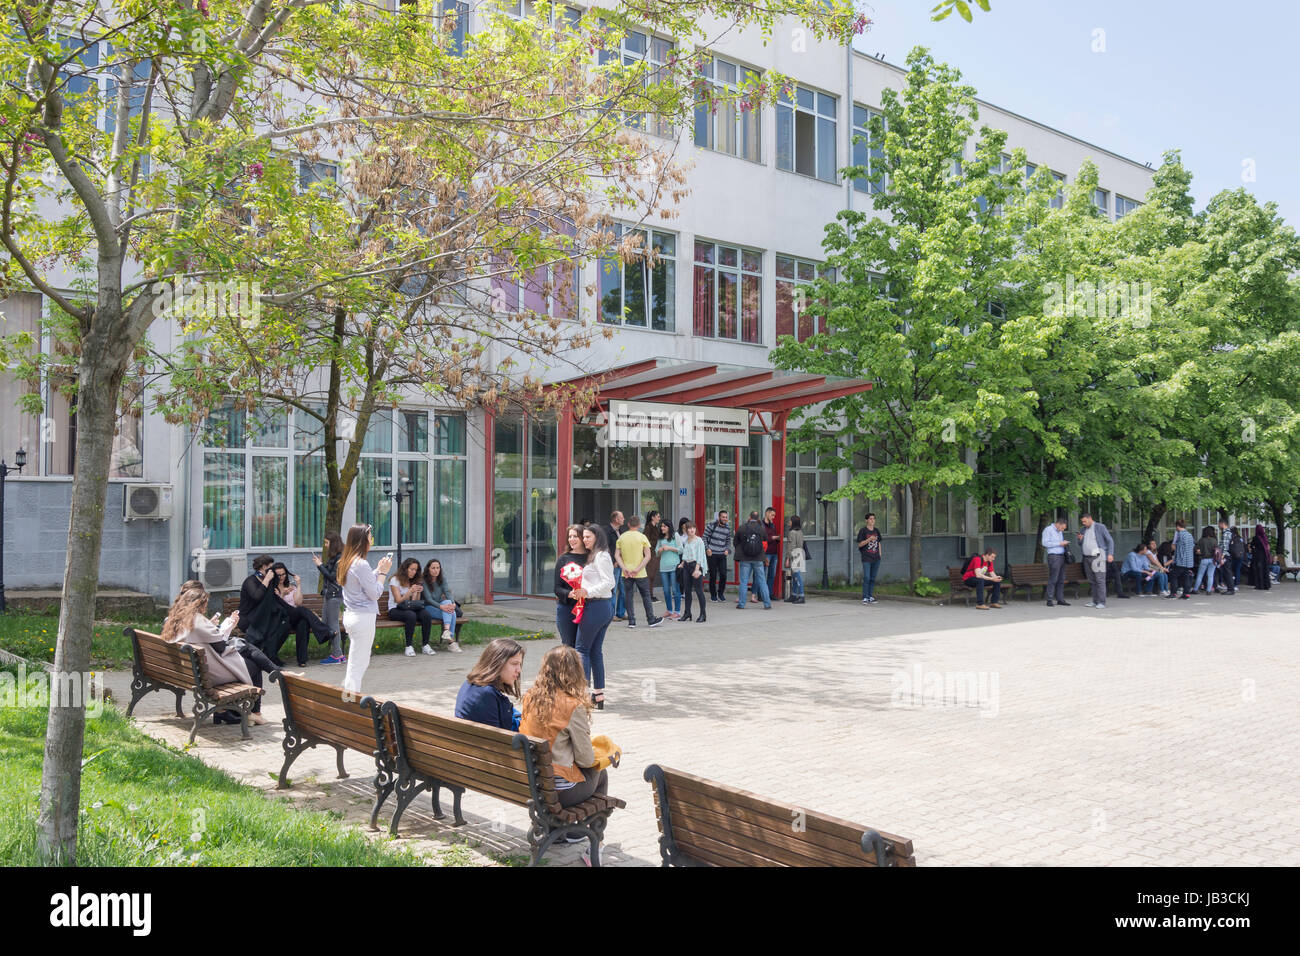 Faculty of Philosophy, University of Pristina, Pristina, Republic of Kosovo - Stock Image